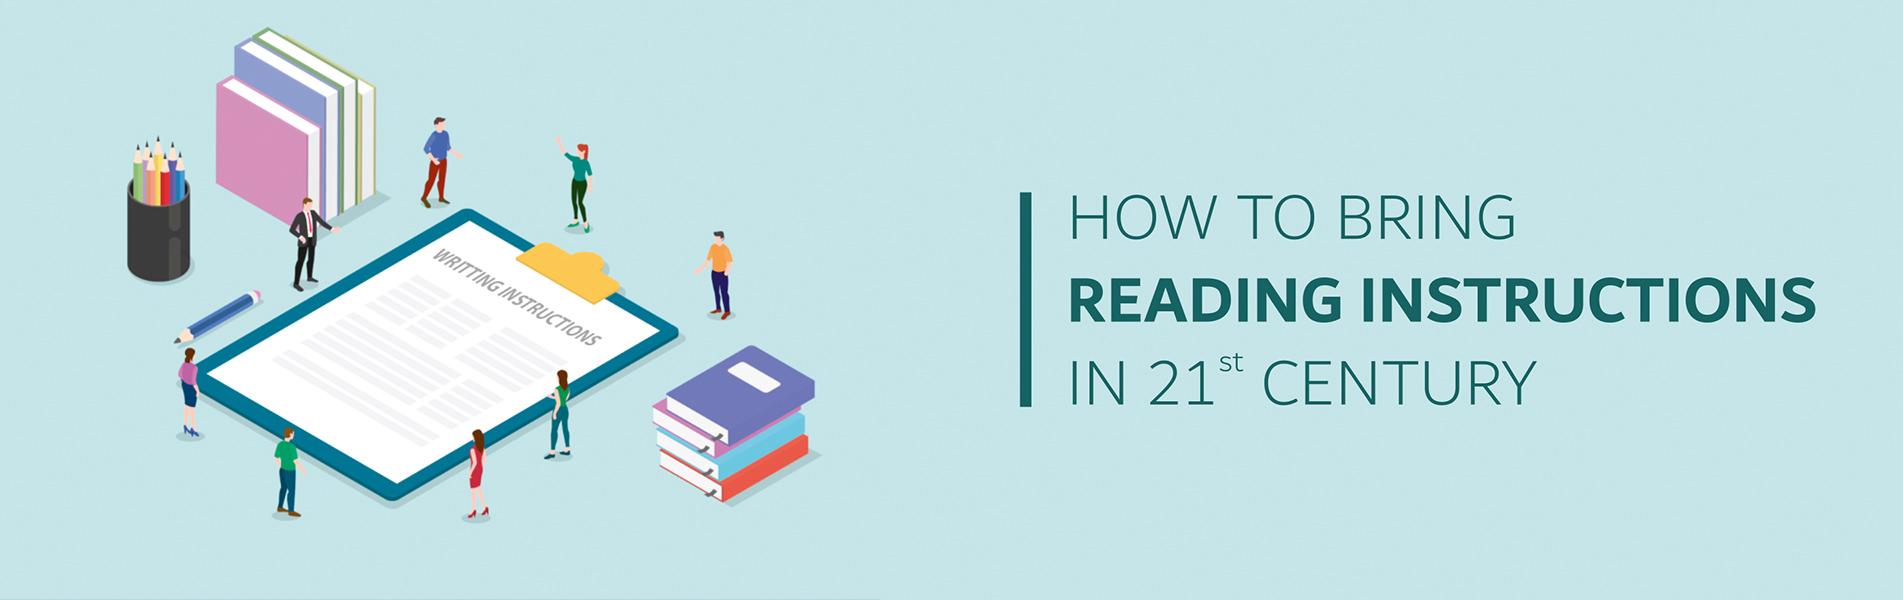 How-to-bring-reading-instructions-in-21st-century